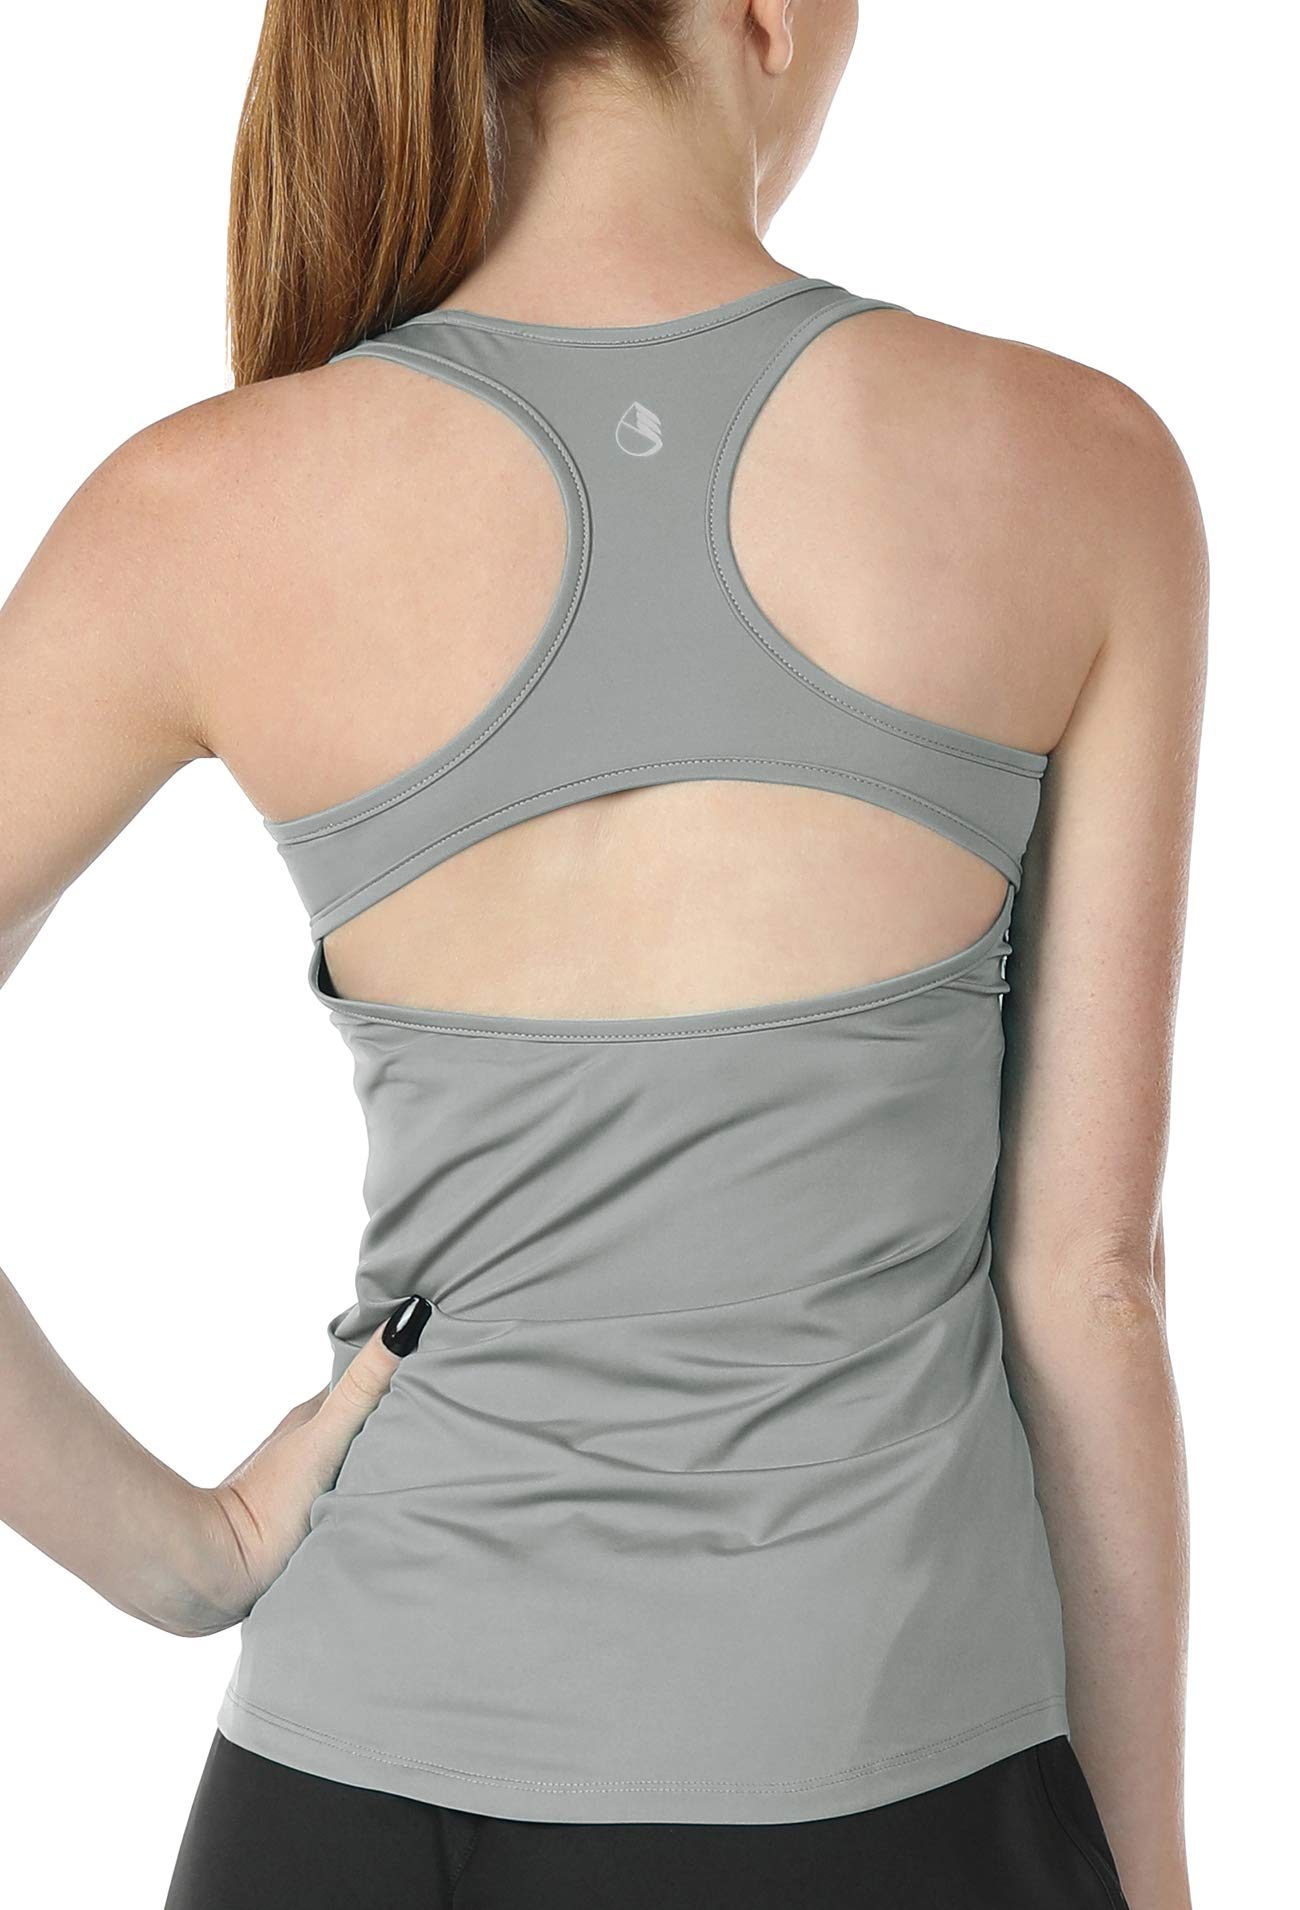 icyzone Open Back Workout Tank Tops for Women - Athletic Training Yoga Tops, Running Exercise Gym Shirts